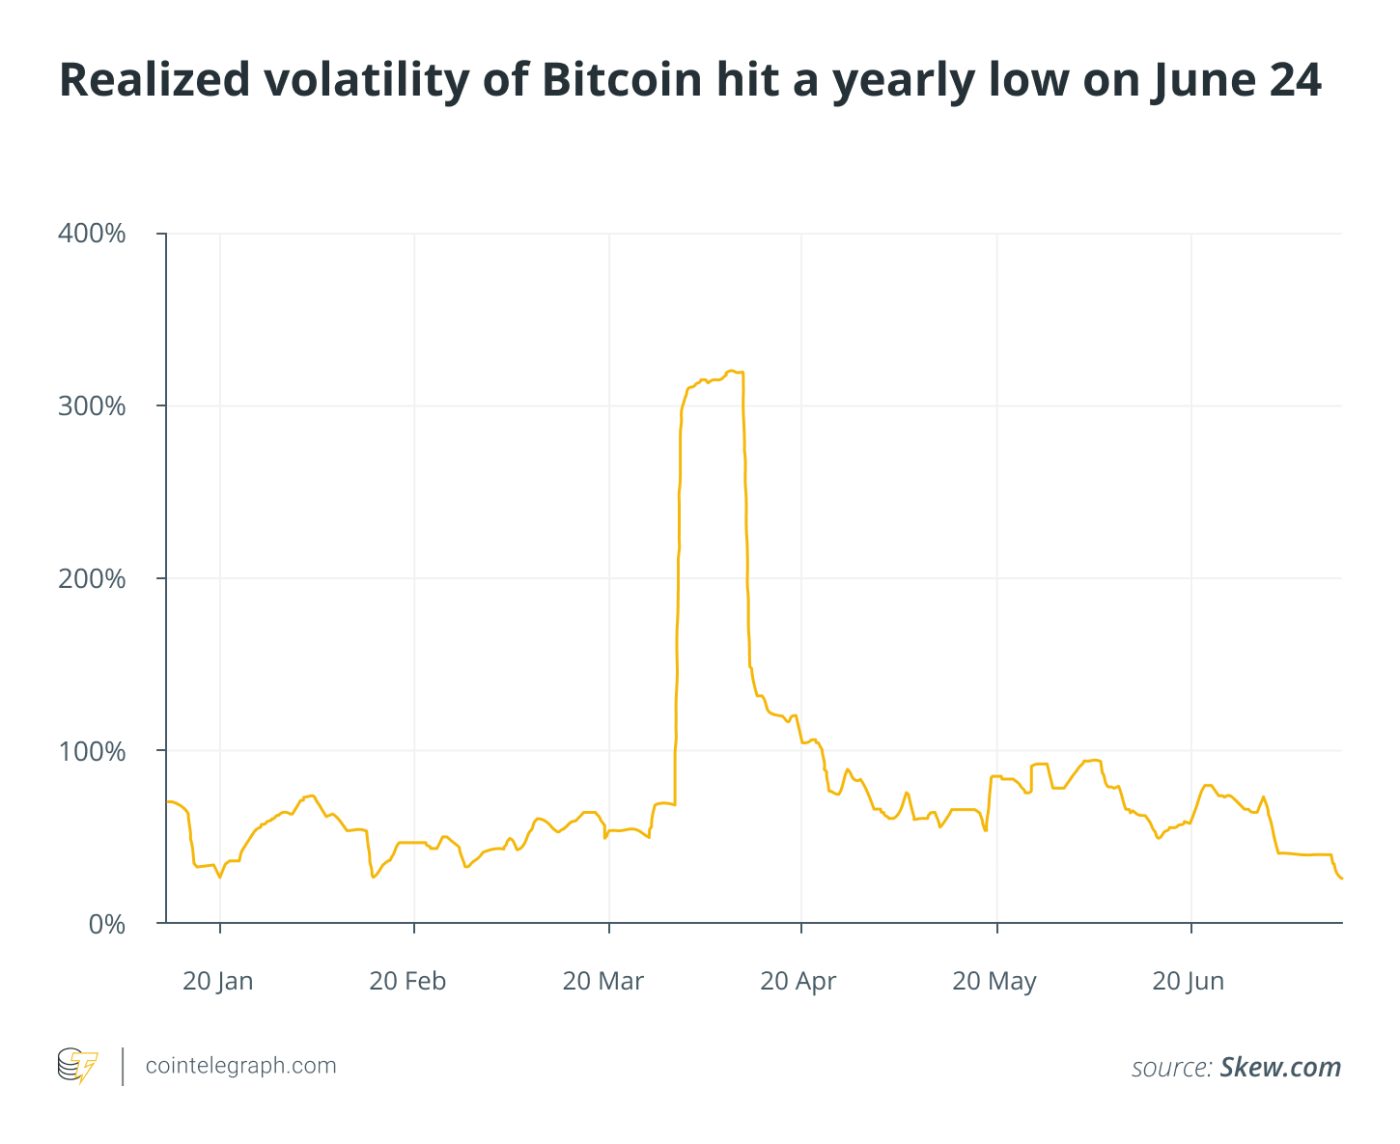 Realized volatility of Bitcoin hit a yearly low on June 24